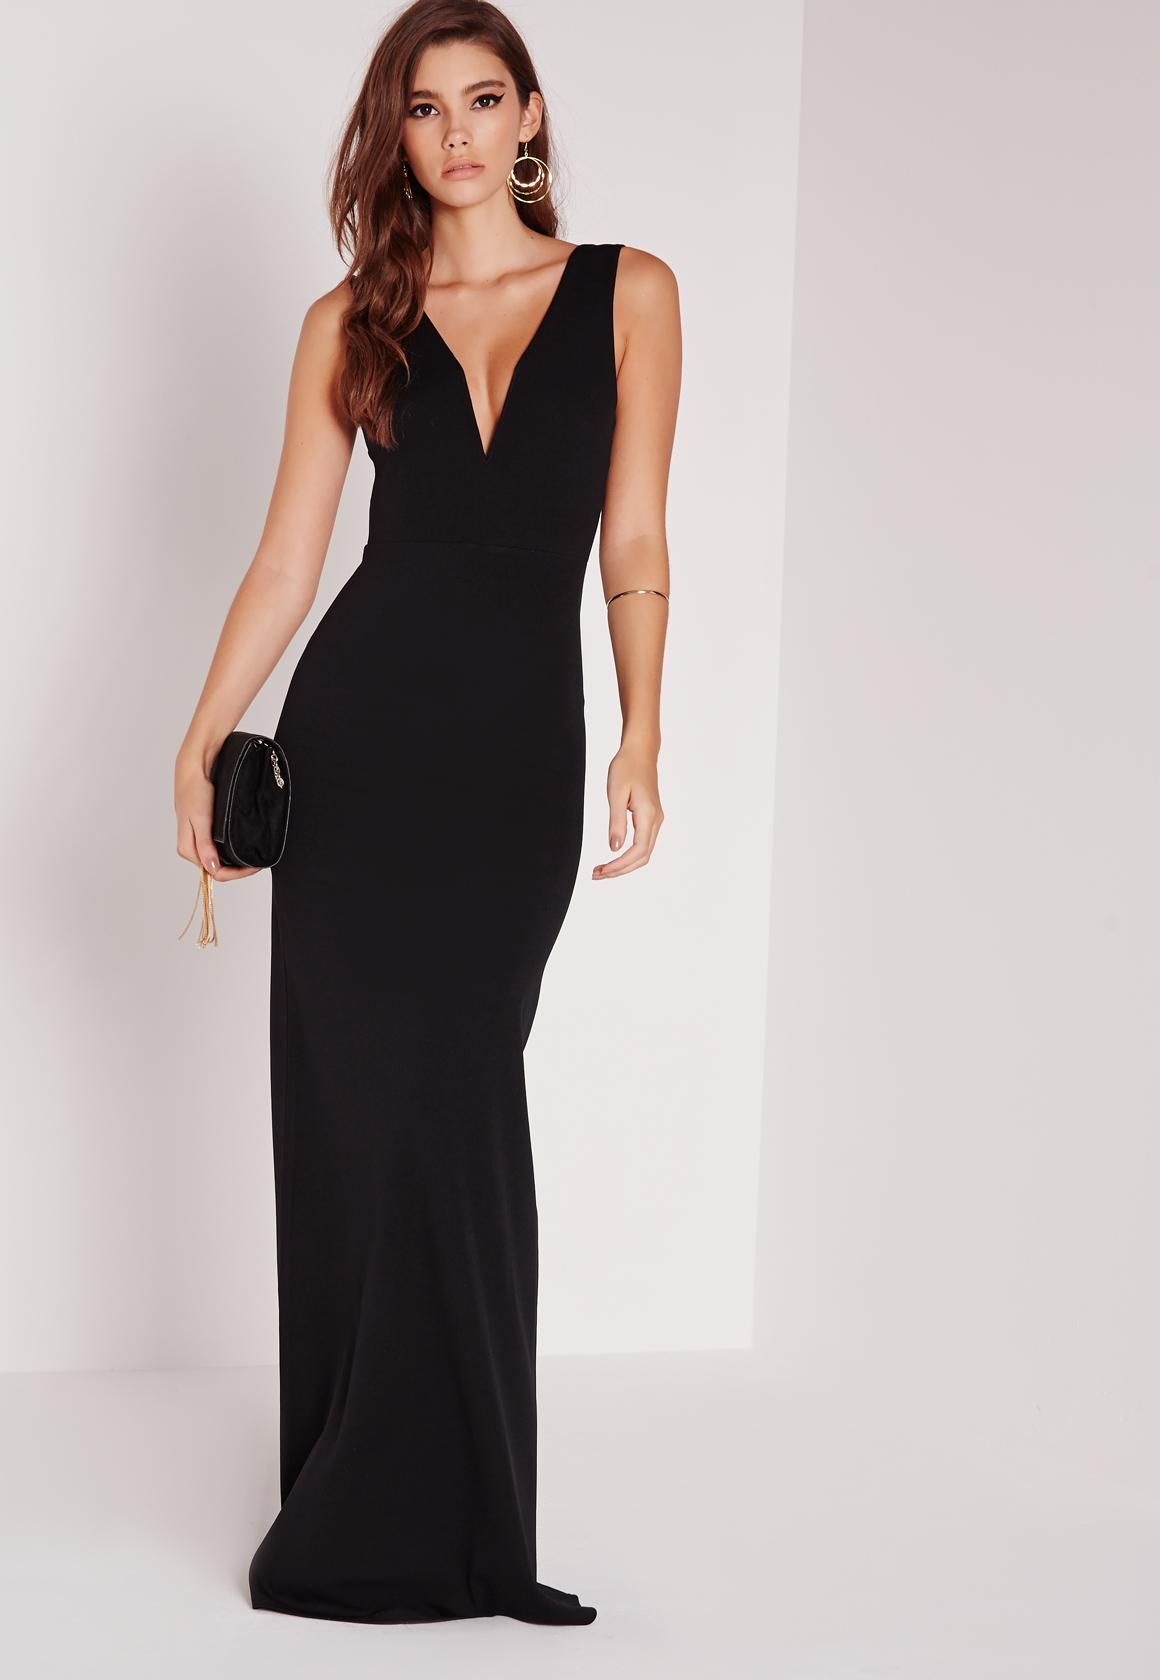 ce47af9e4a971 Missguided - Petite V Plunge Maxi Dress Black | CLOTHES/ ACCESSORIES ...